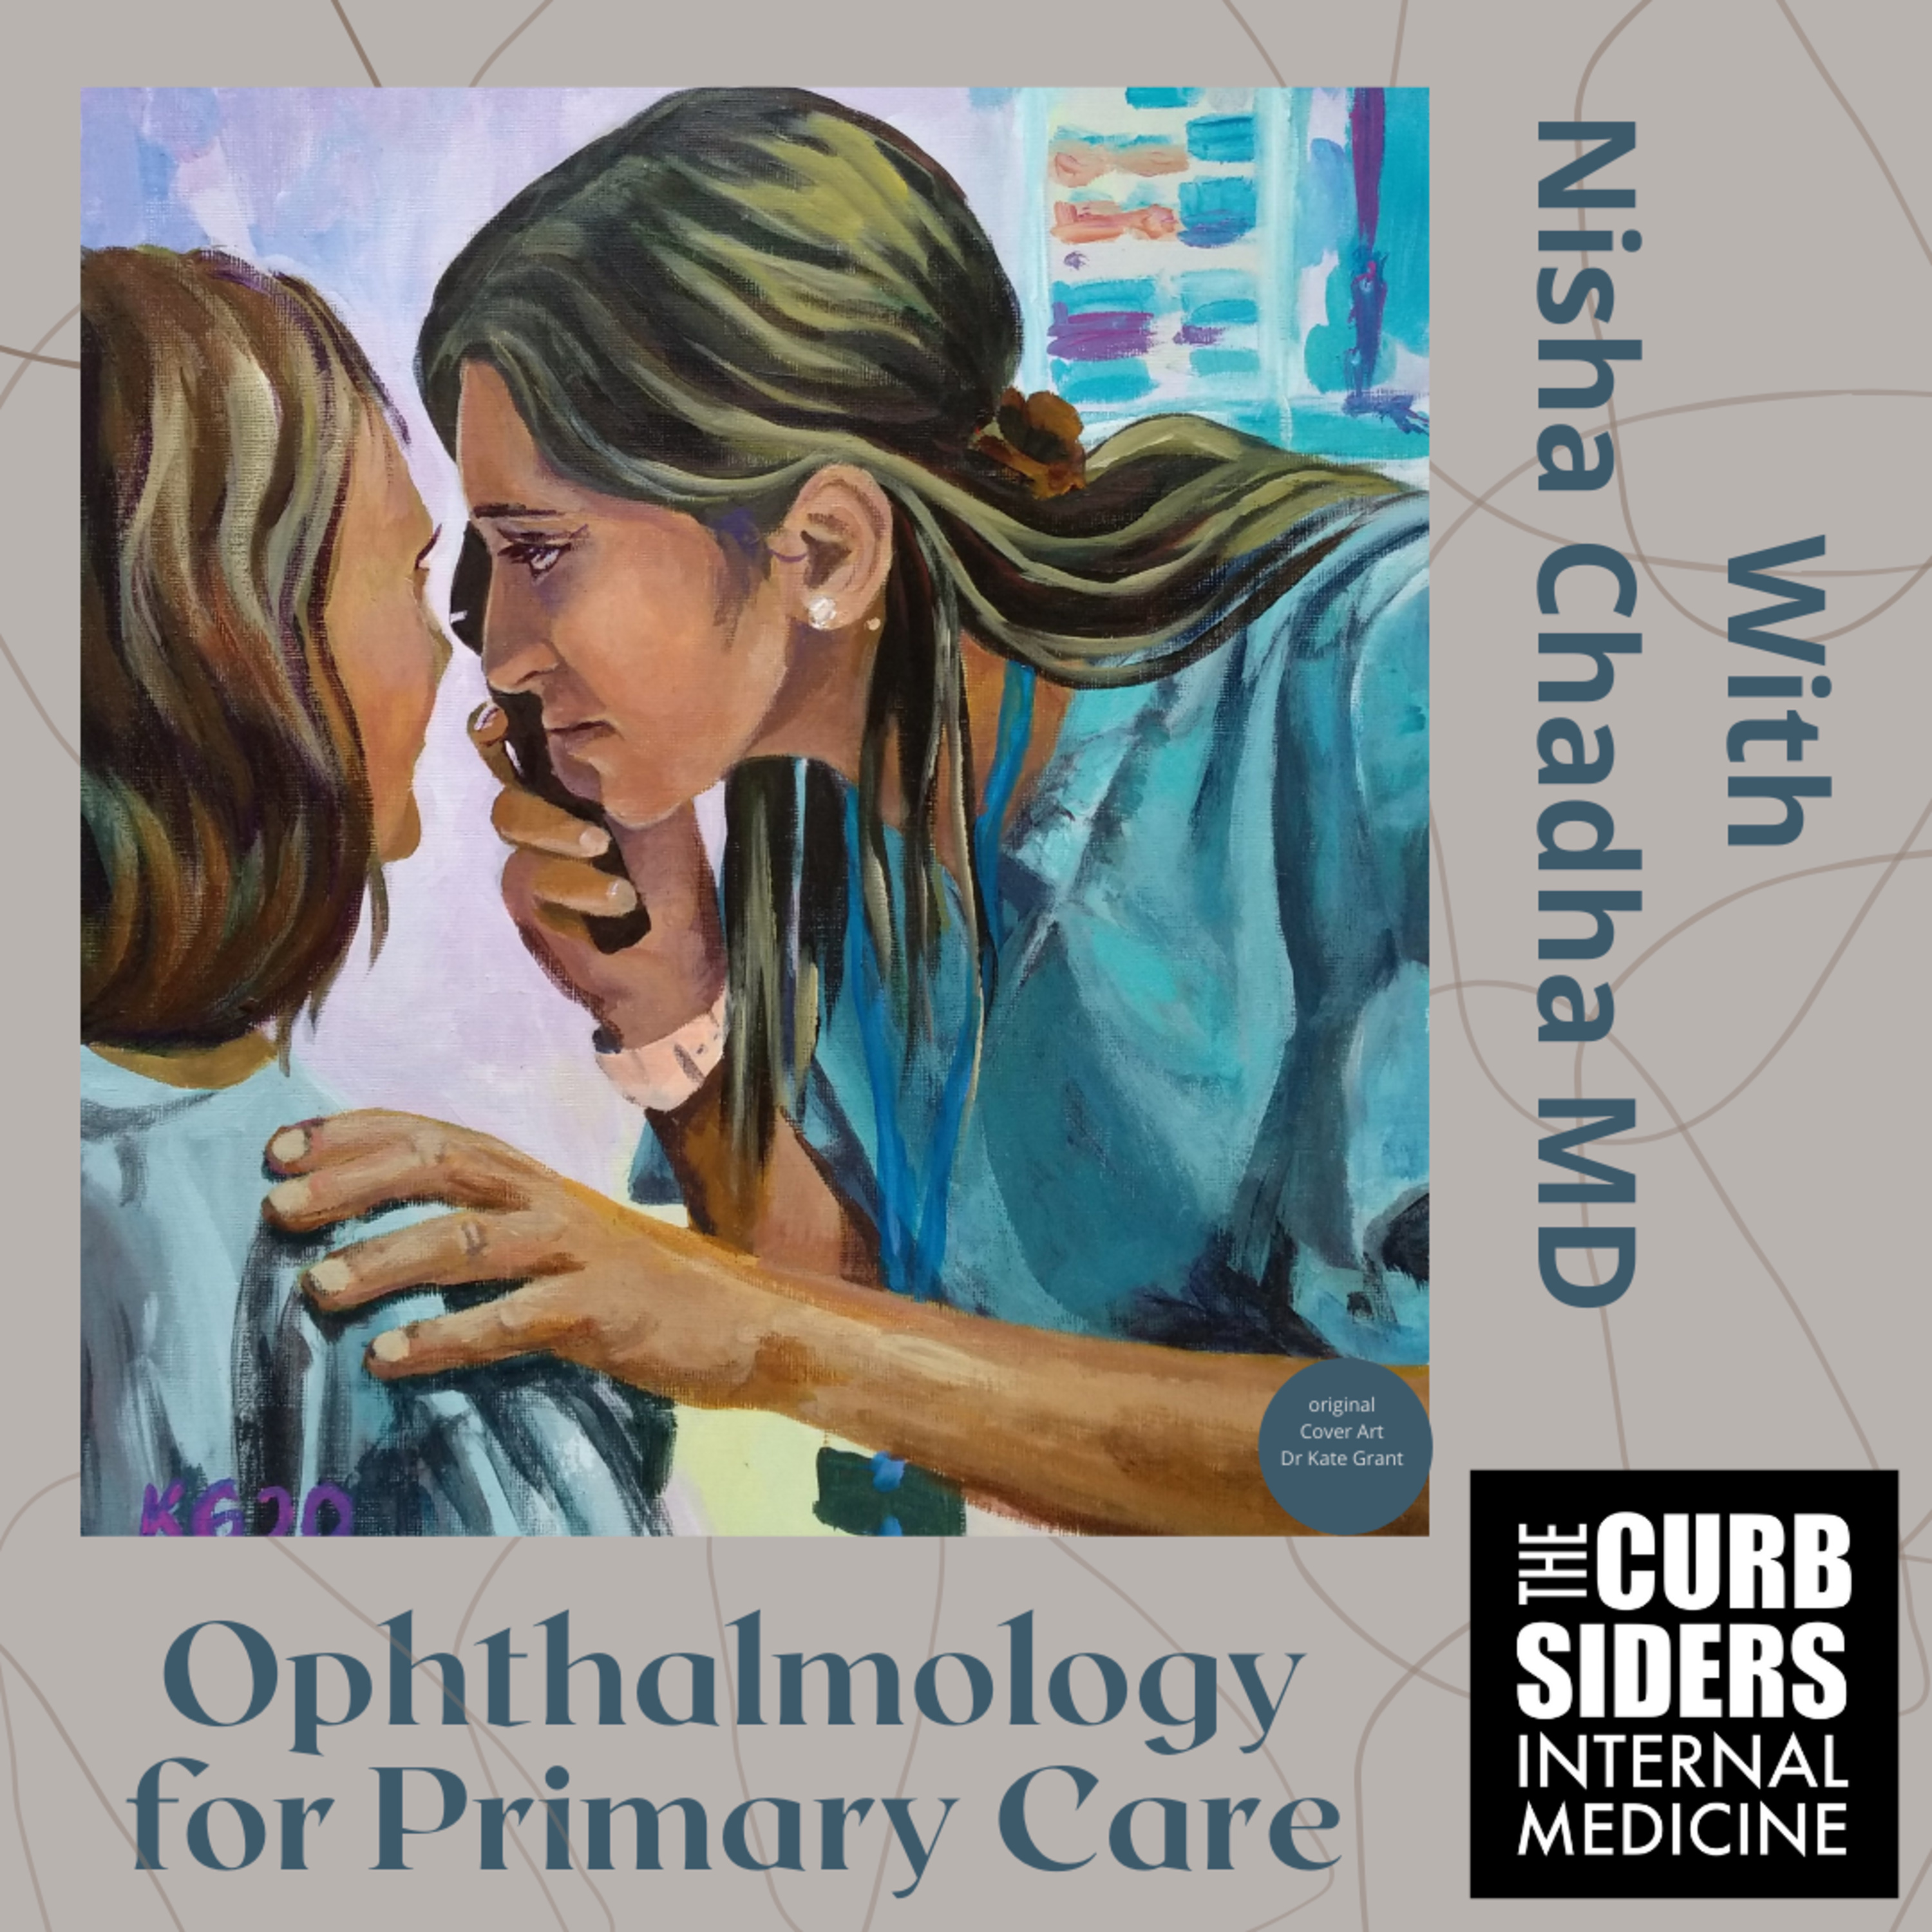 #237 Ophthalmology for Primary Care - Diabetic Eye Diseases and The 3 Vital Signs of Ophthalmology with Dr Nisha Chadha MD